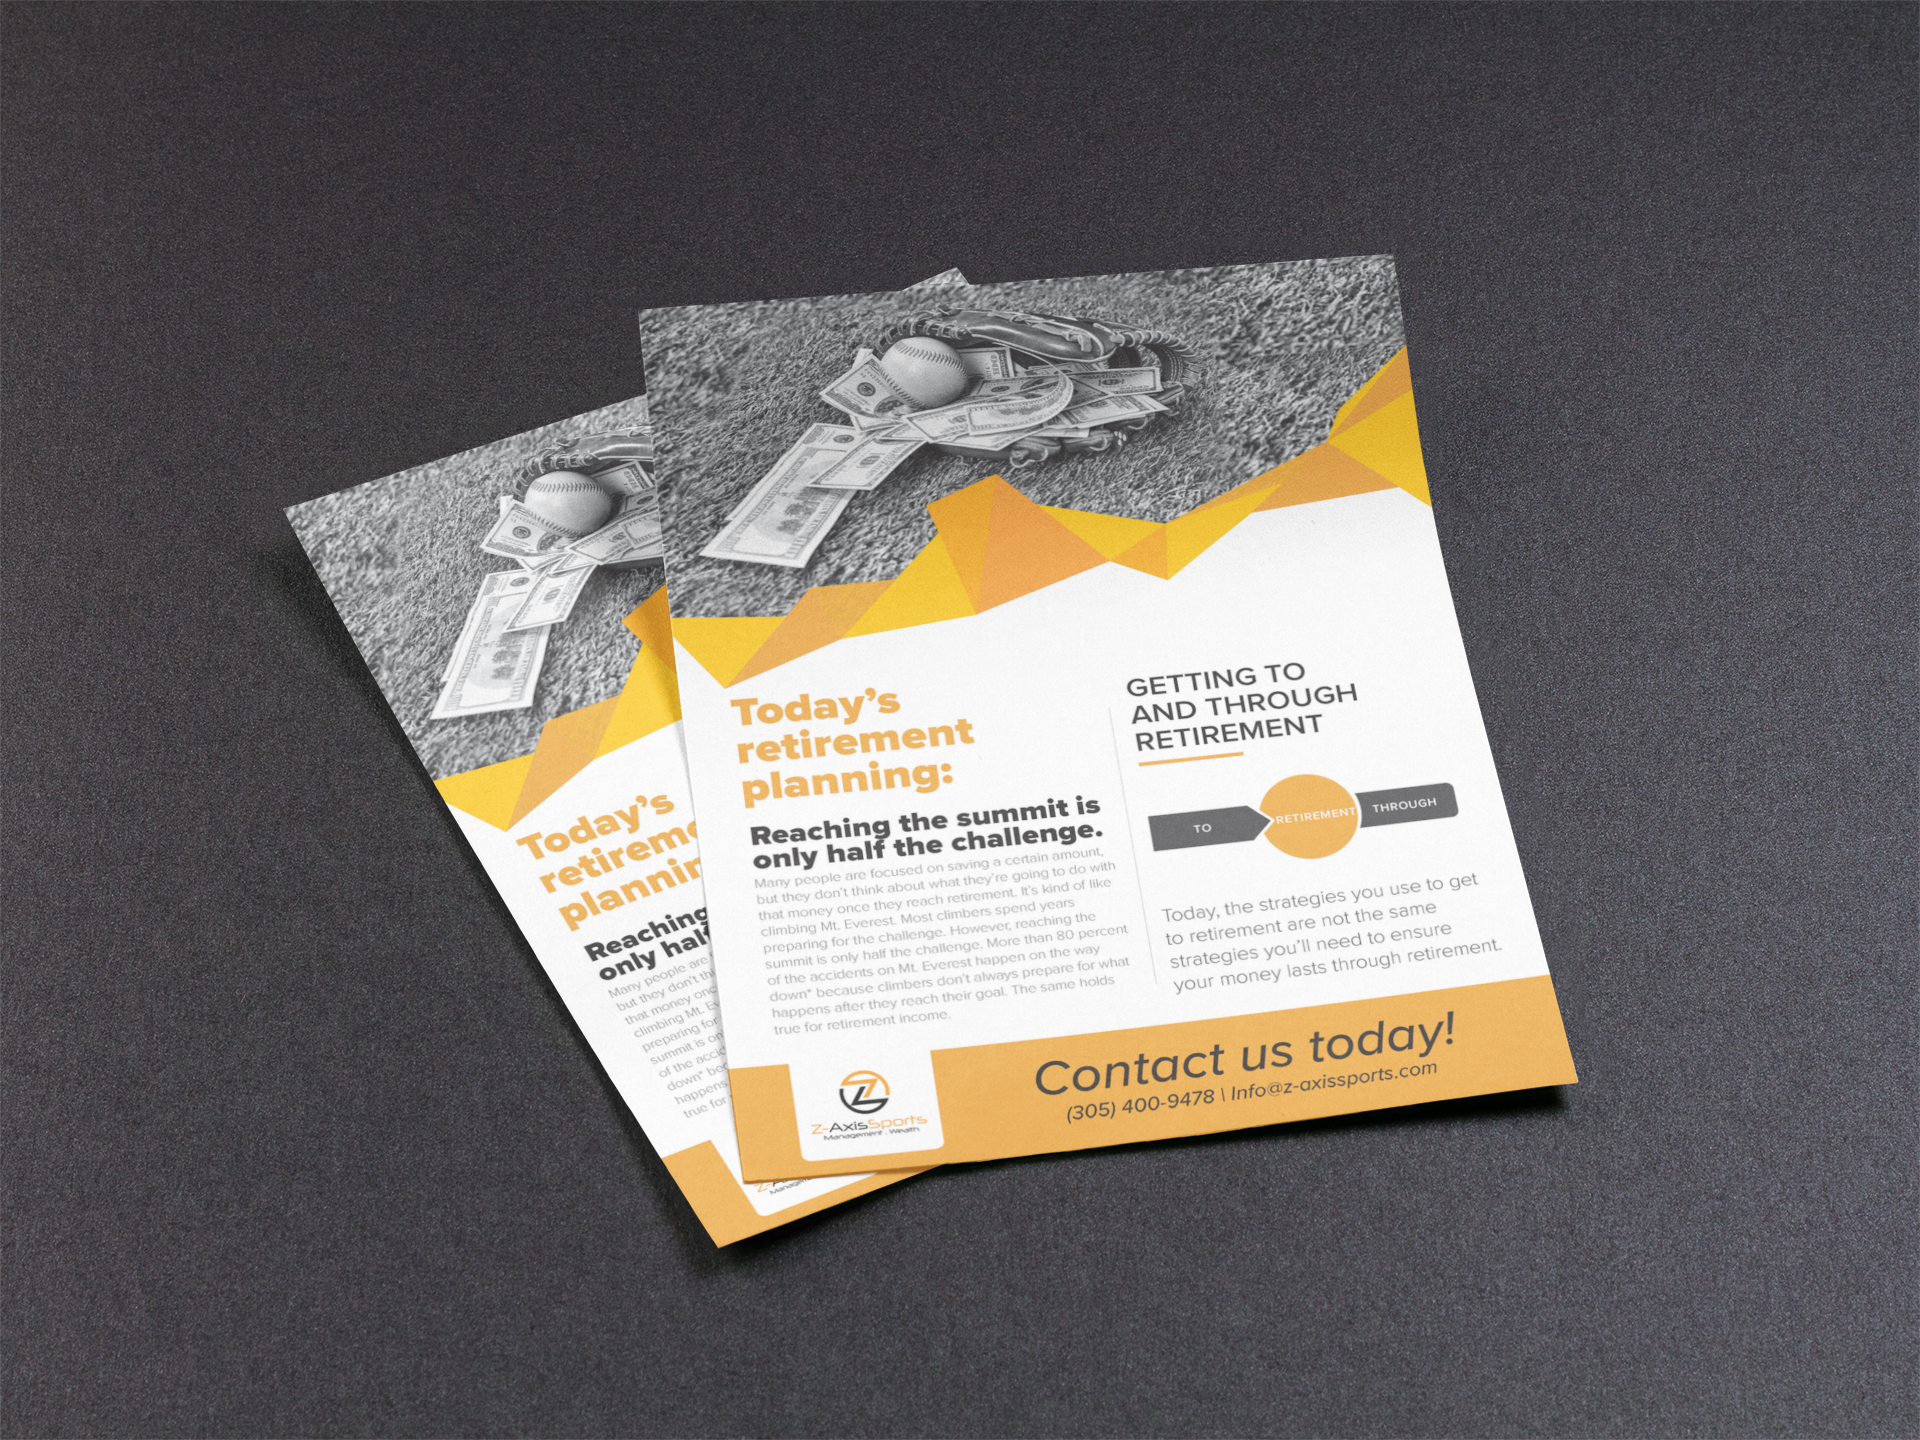 Left-Eye-Creations-Boston-mockup-template-of-a-set-of-flyers-lying-over-a-solid-backdrop-a10372.png